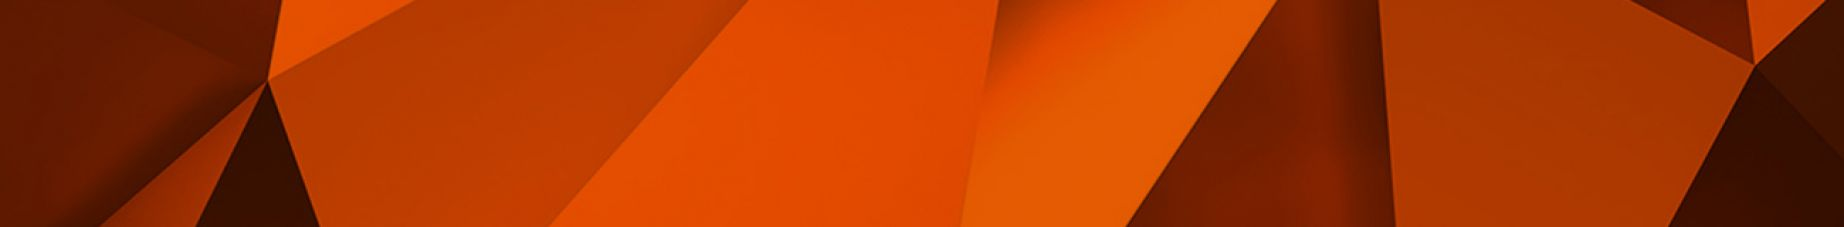 Geo abstract orange